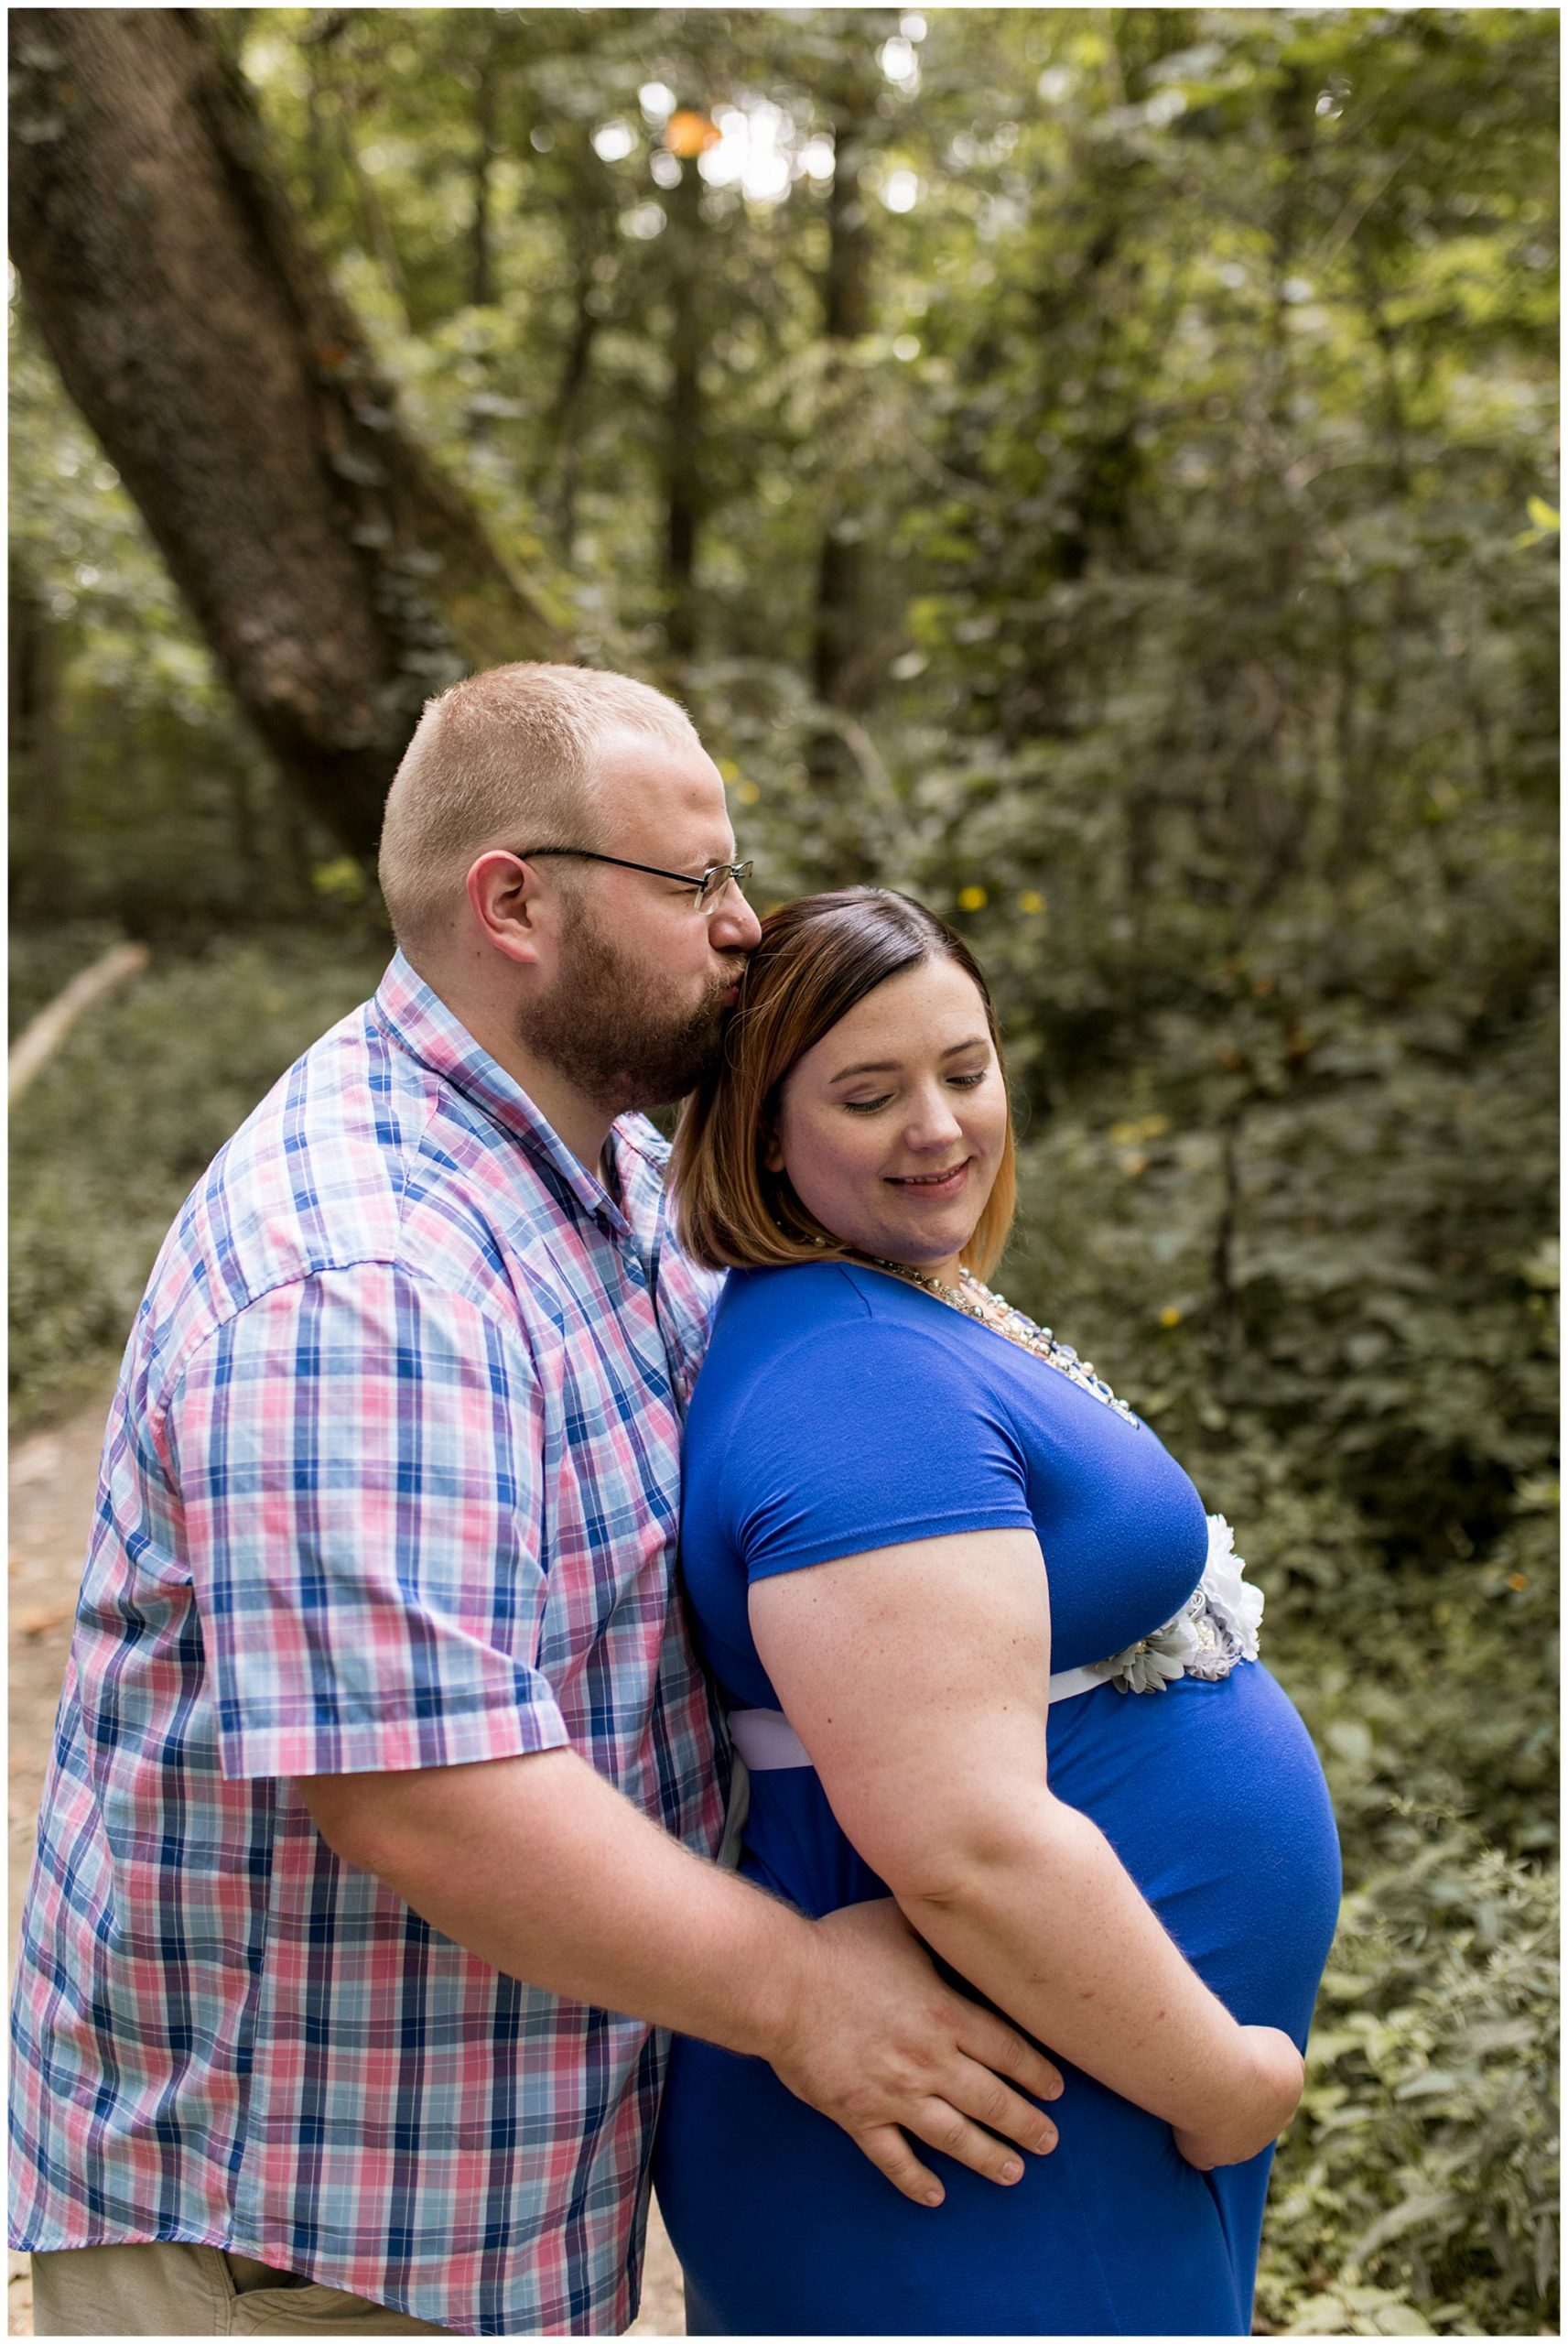 Kokomo Indiana maternity session at Jackson Morrow Park